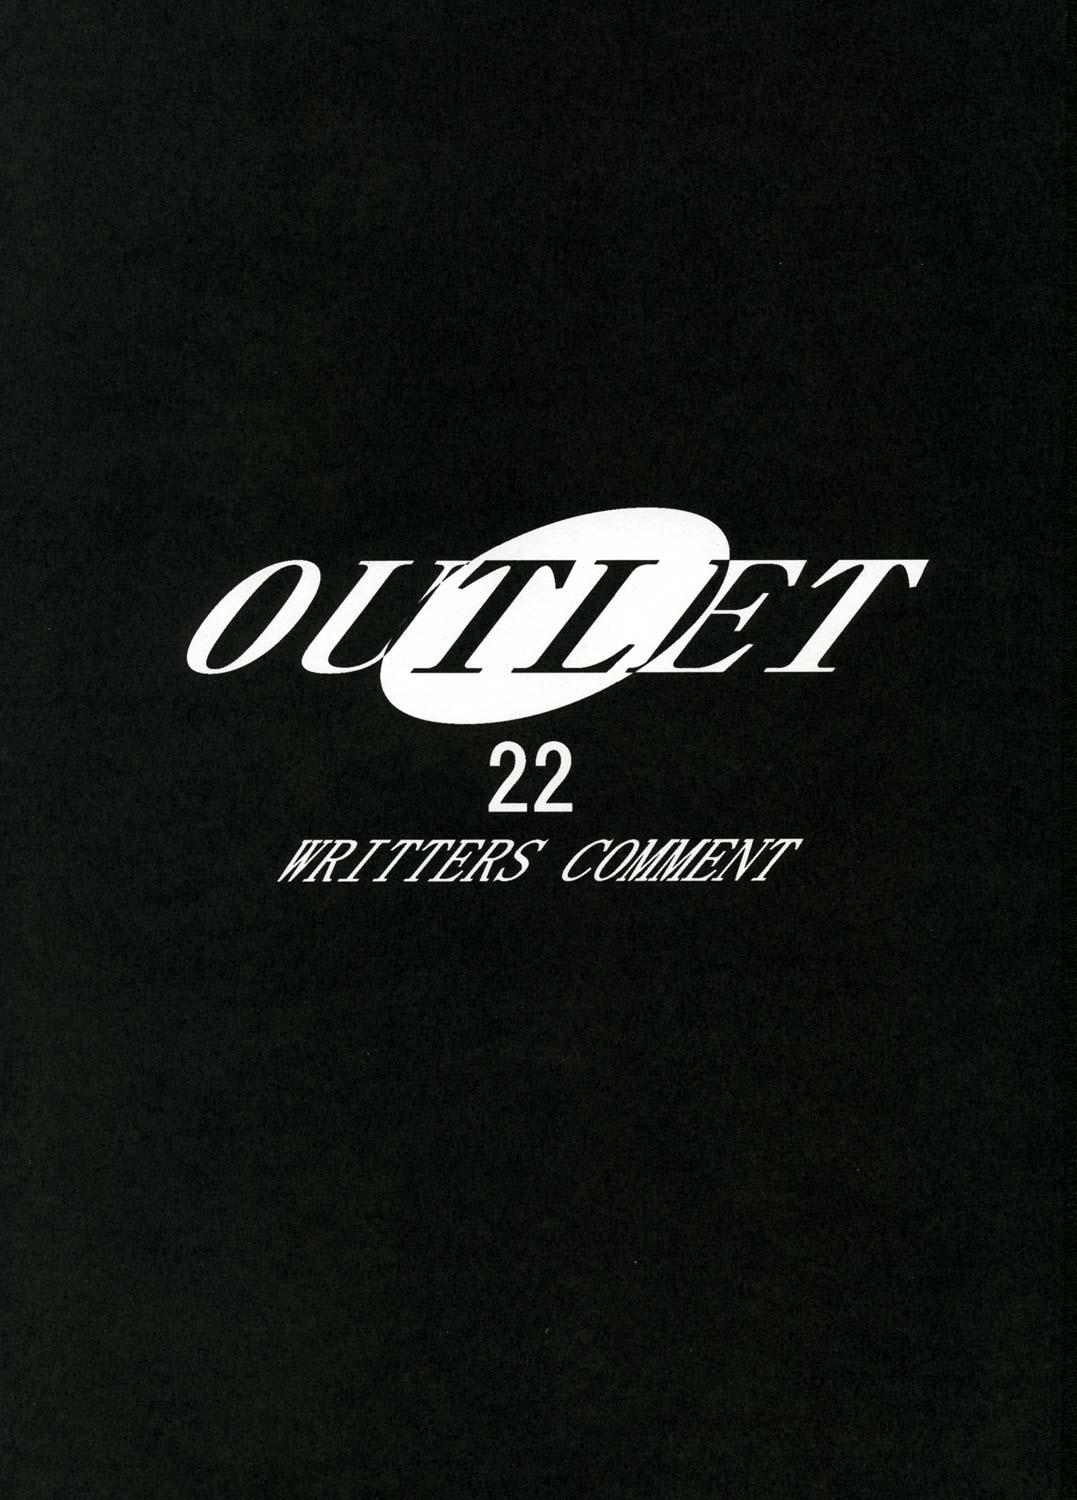 OUTLET 22 40